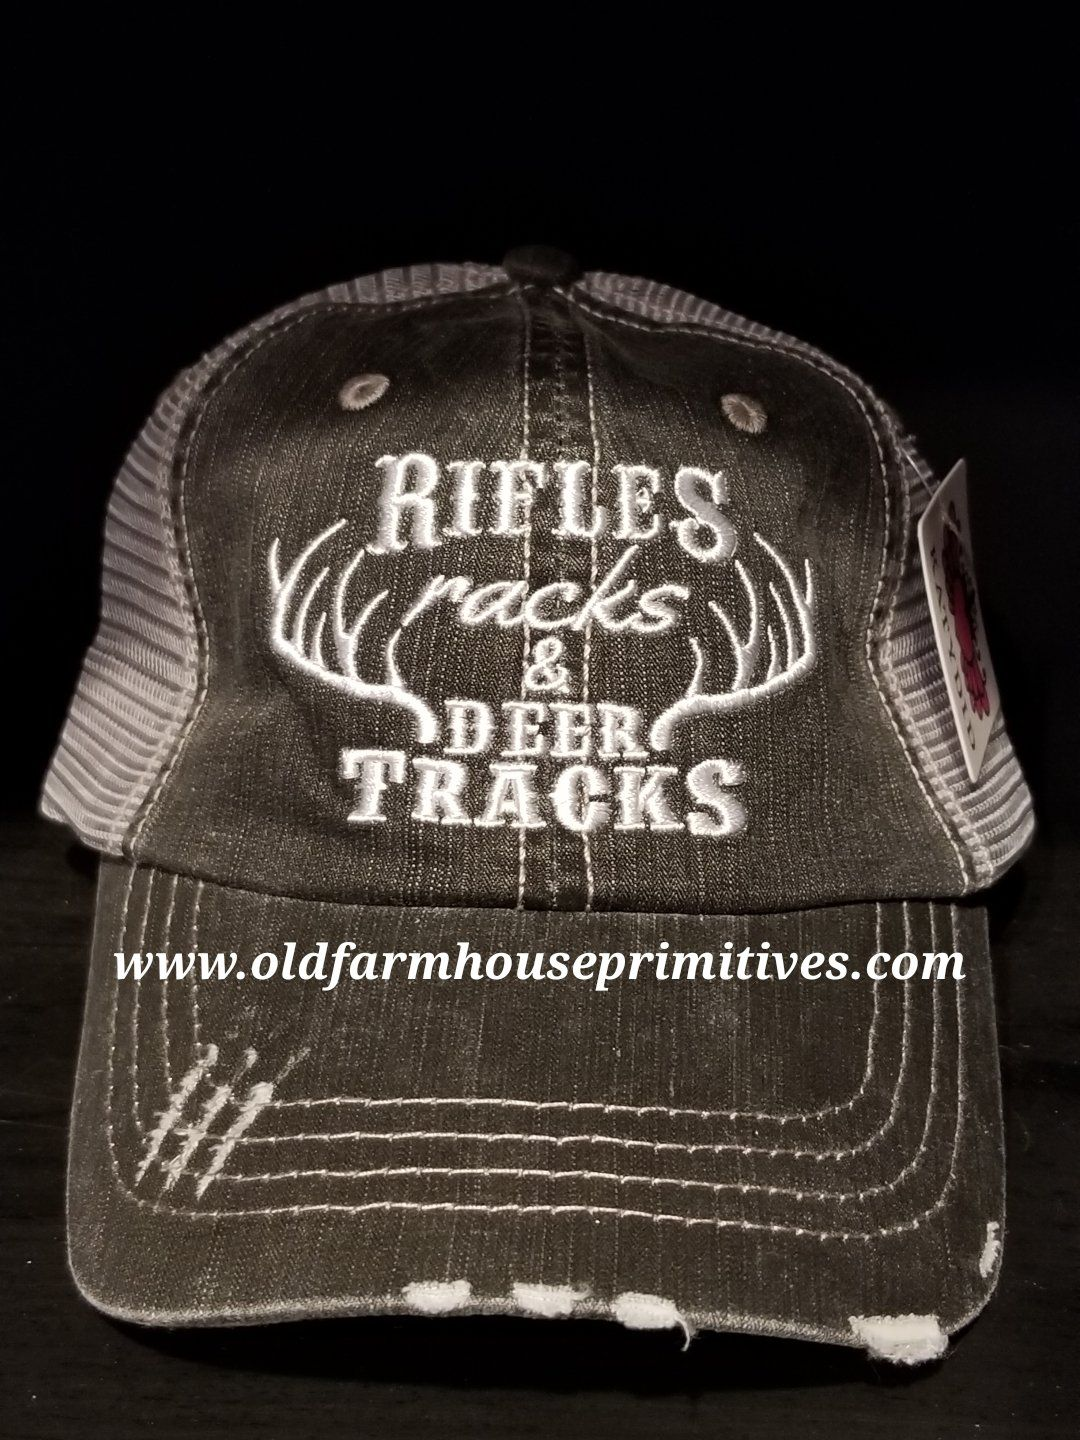 db516dc1aa3 KD42 Rifles Racks   Deer Tracks Women s Trucker Hat